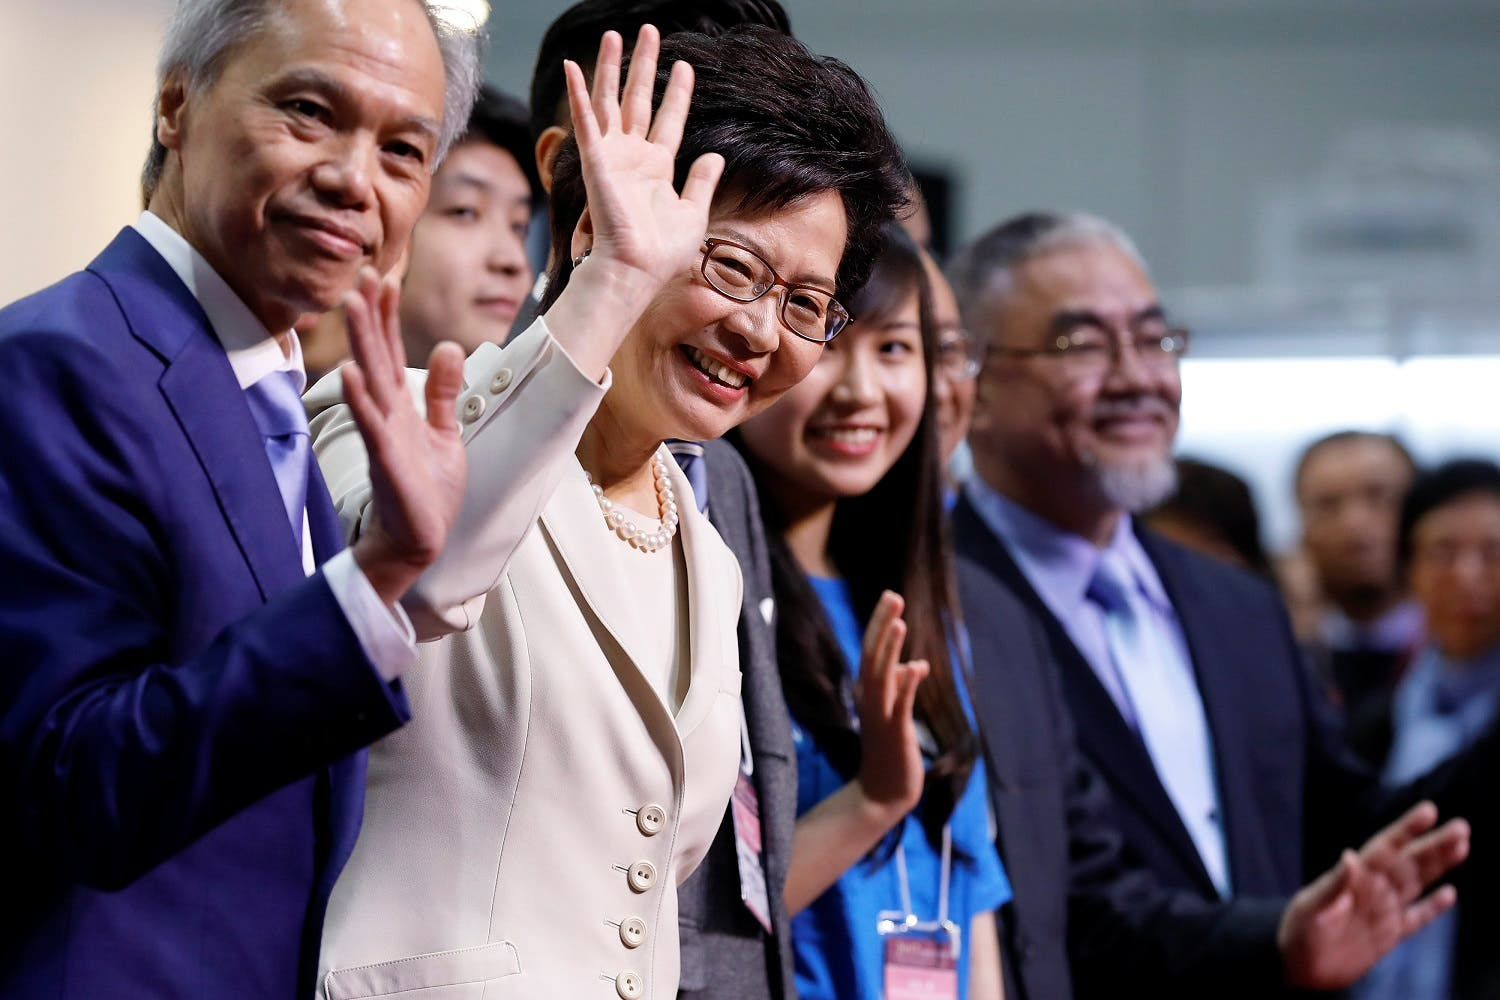 Carrie Lam waves during news conference in Hong Kong. (Reuters)